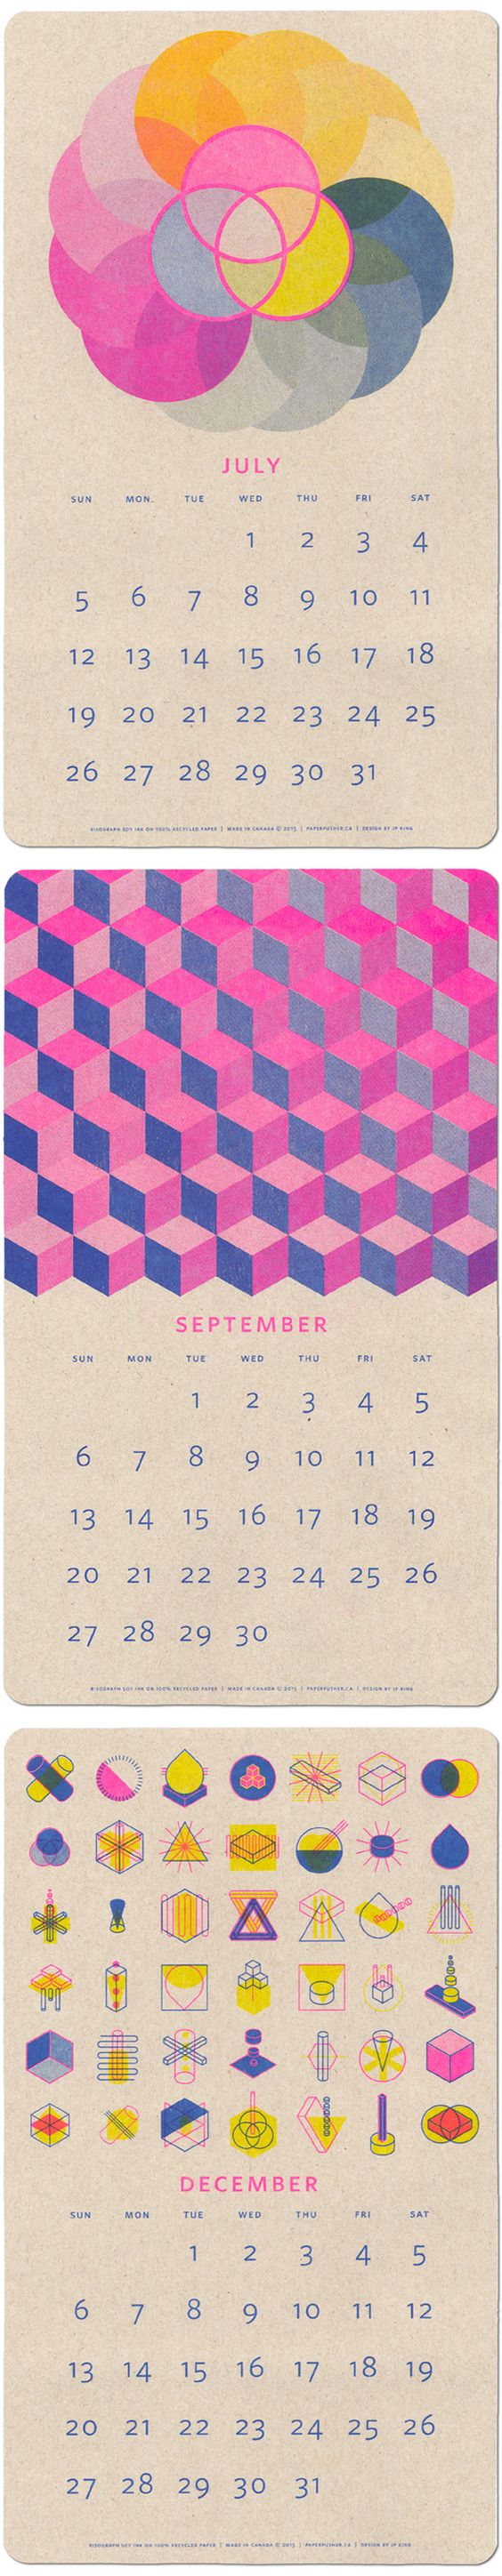 2015 risograph print calendar by paper pusher